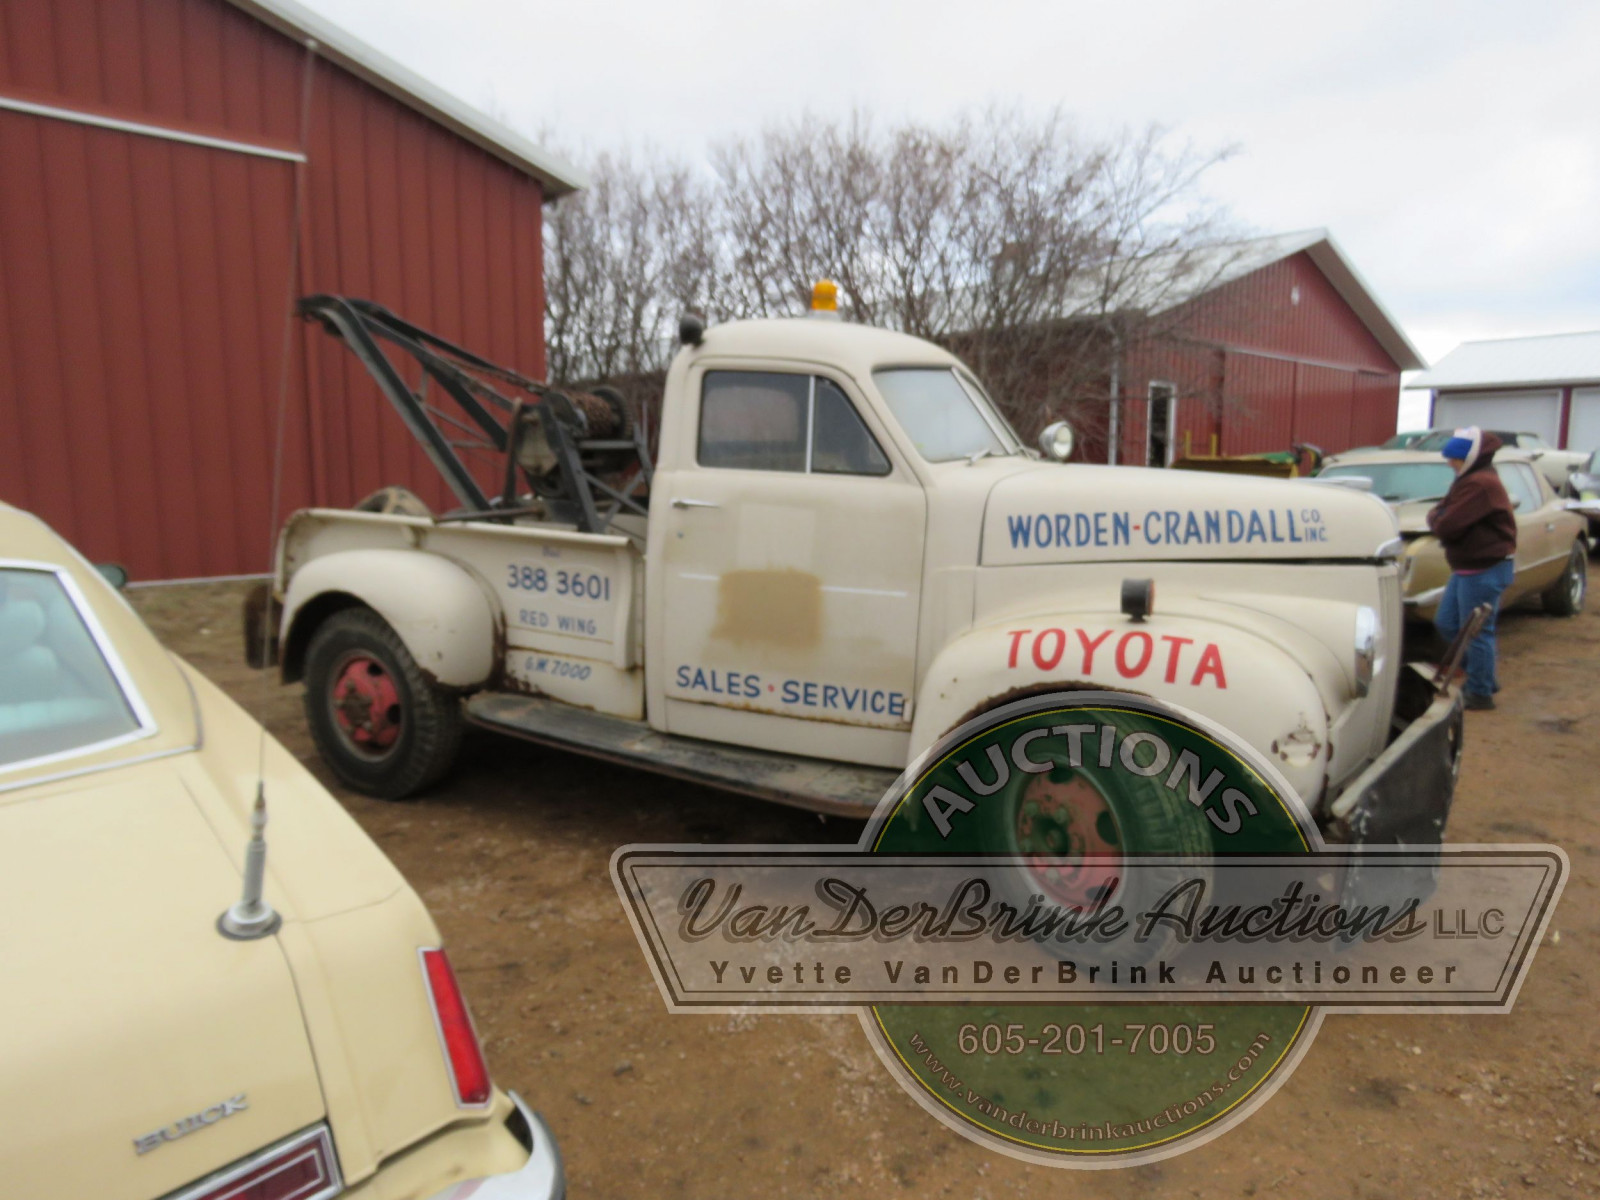 1947 Studebaker Towtruck - Image 12